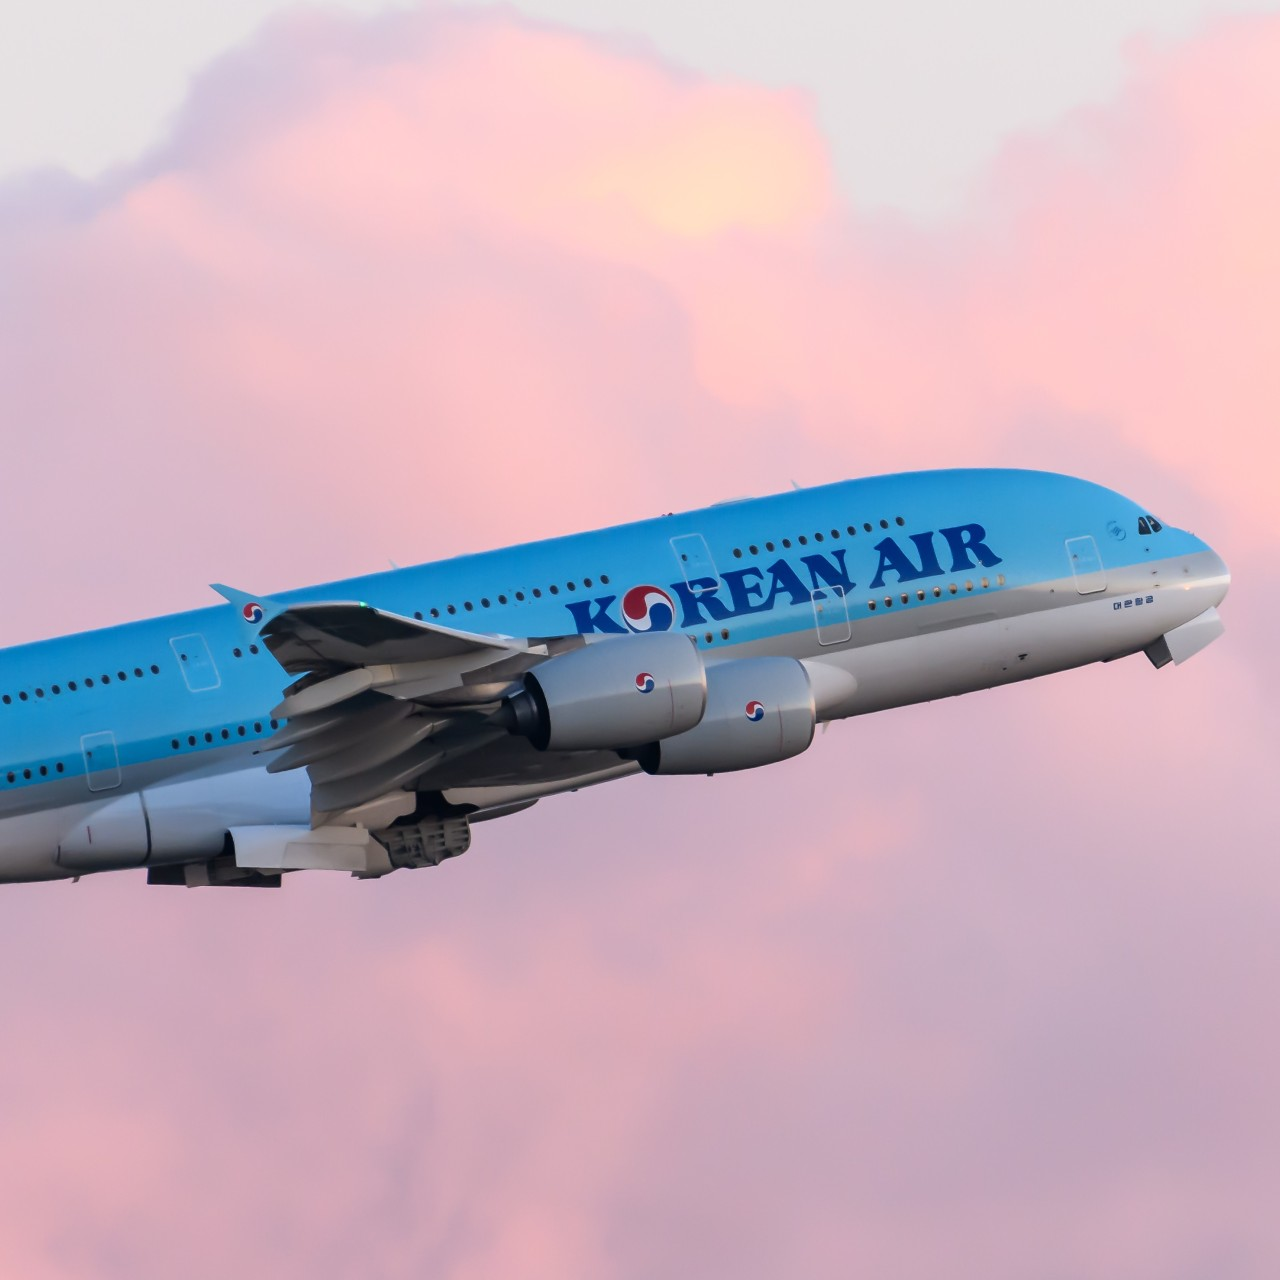 Korean Air marks 50 years of excellence, or is it accidents